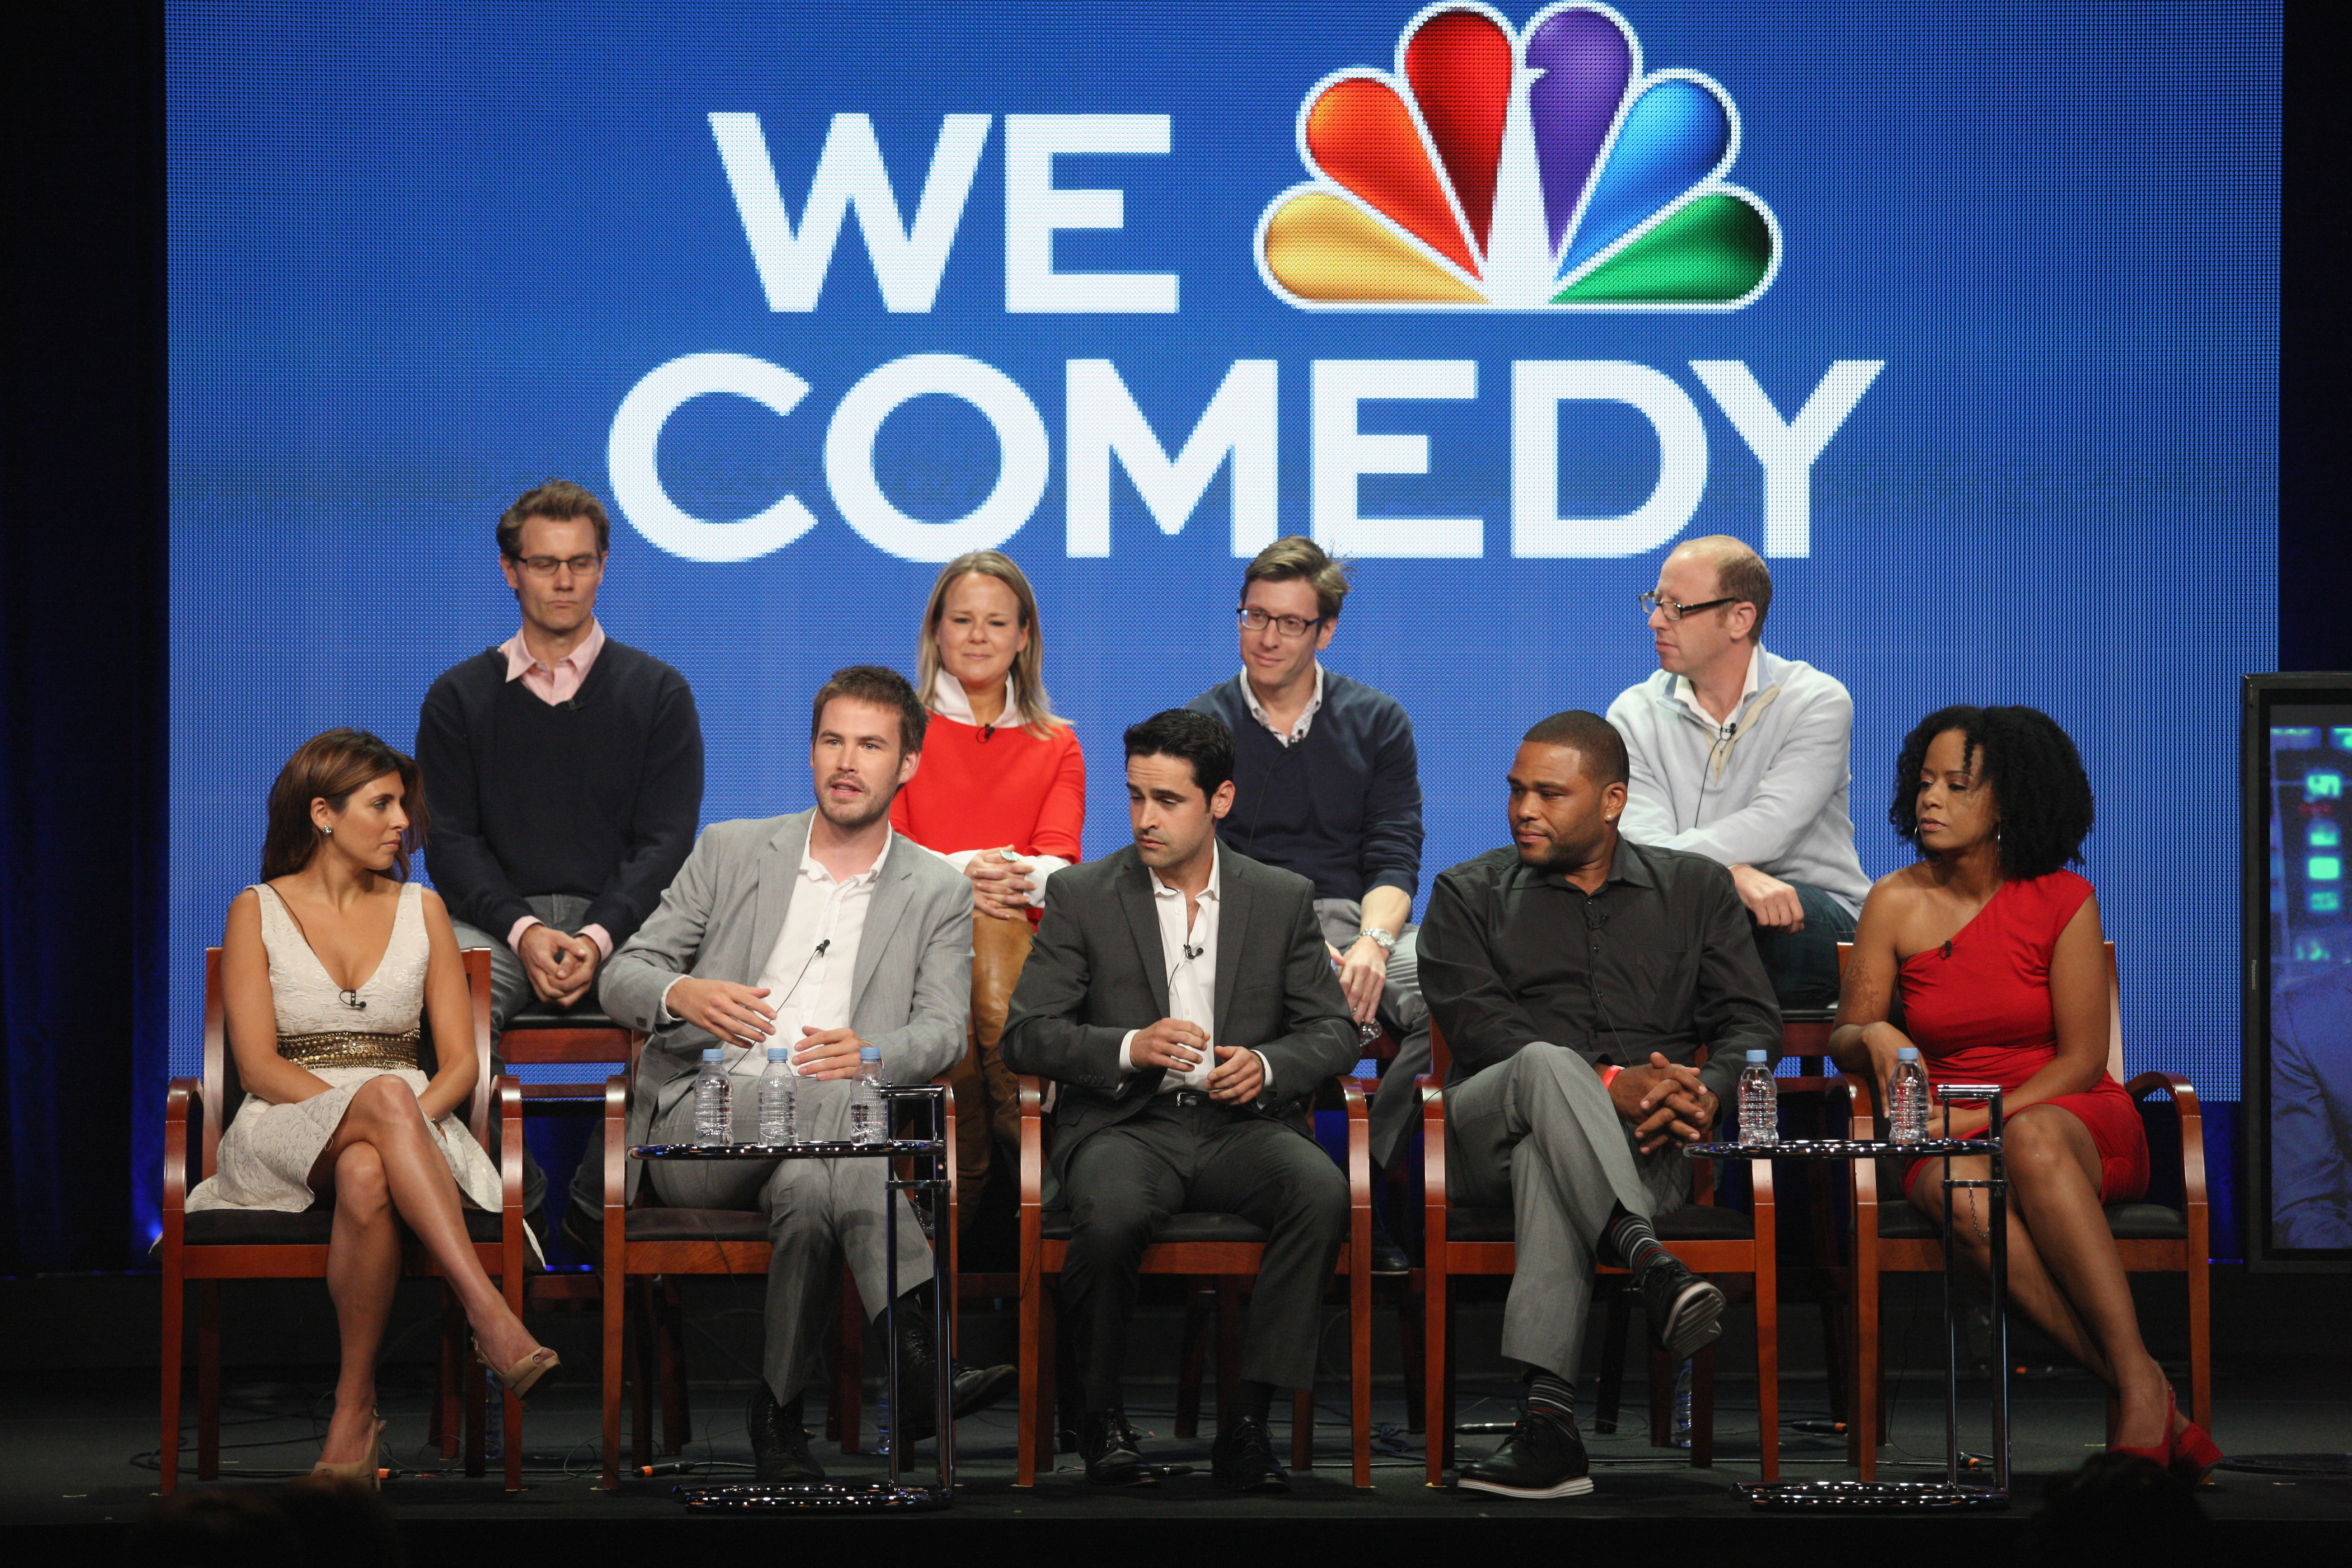 Guys With Kids executive producers Kenny Schwartz, Amy Ozols, Charlie Grandy and Rick Wiener joined actors Jamie Lynn Sigler, Zach Cregger, Jesse Bradford, Anthony Anderson and Tempestt Bledsoe onstage during NBC's 2012 Summer TCA tour.